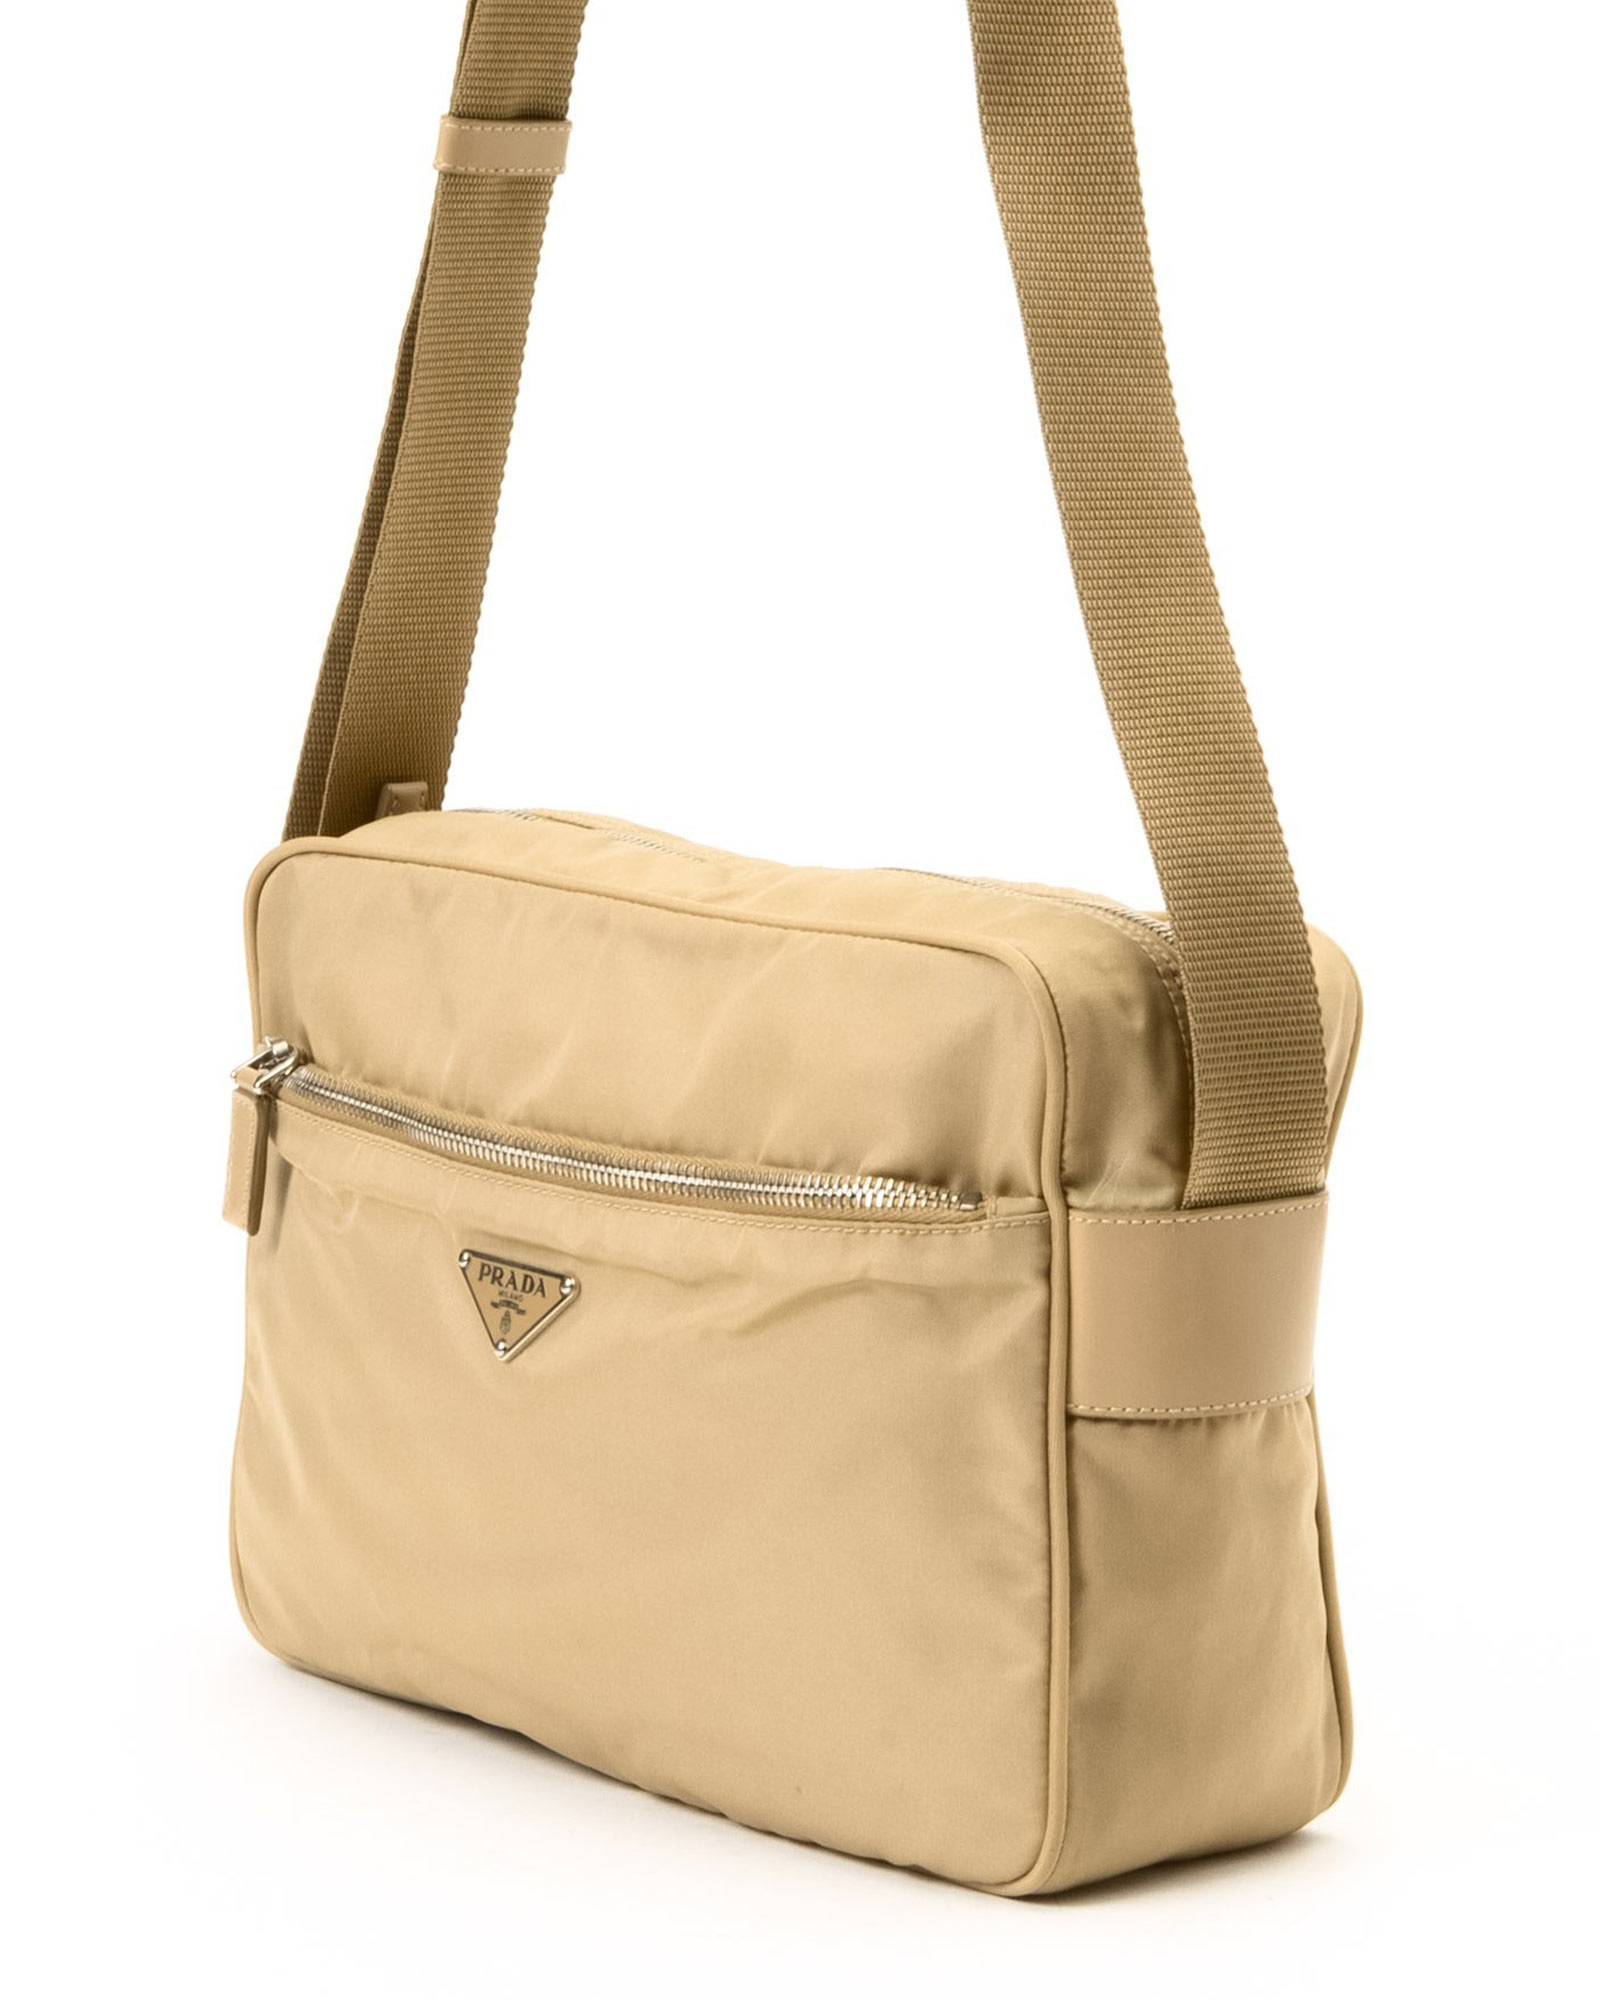 Prada Tessuto Shoulder Bag - Vintage in Beige | Lyst